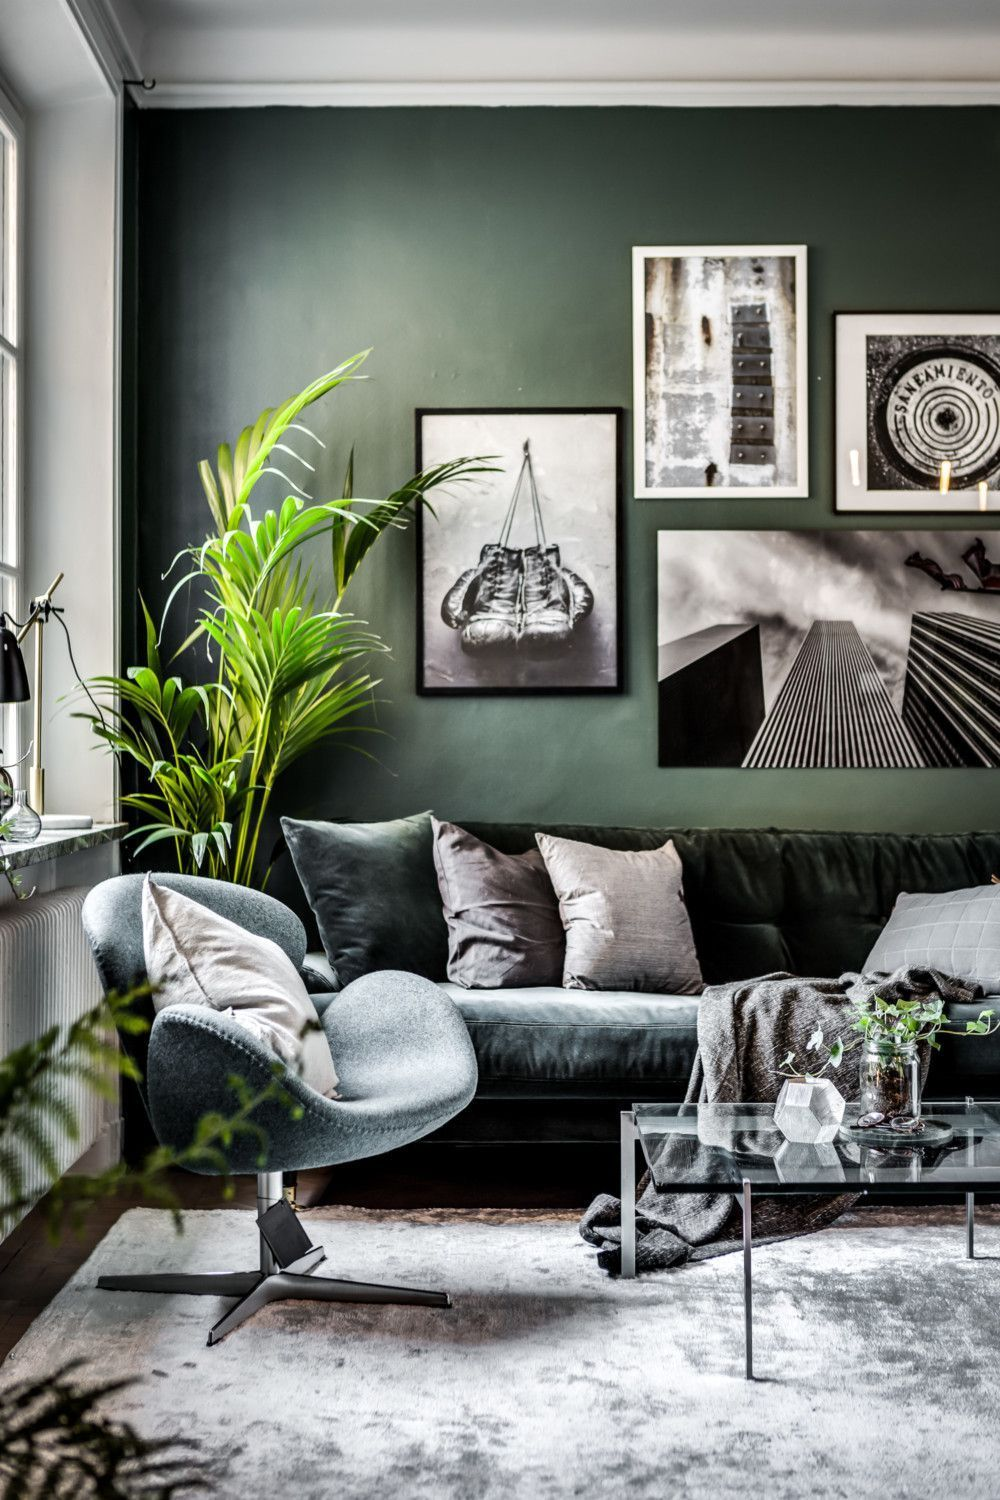 Green Living Room Designs: Scandinavian Living Space. We Adore This Stylish Design